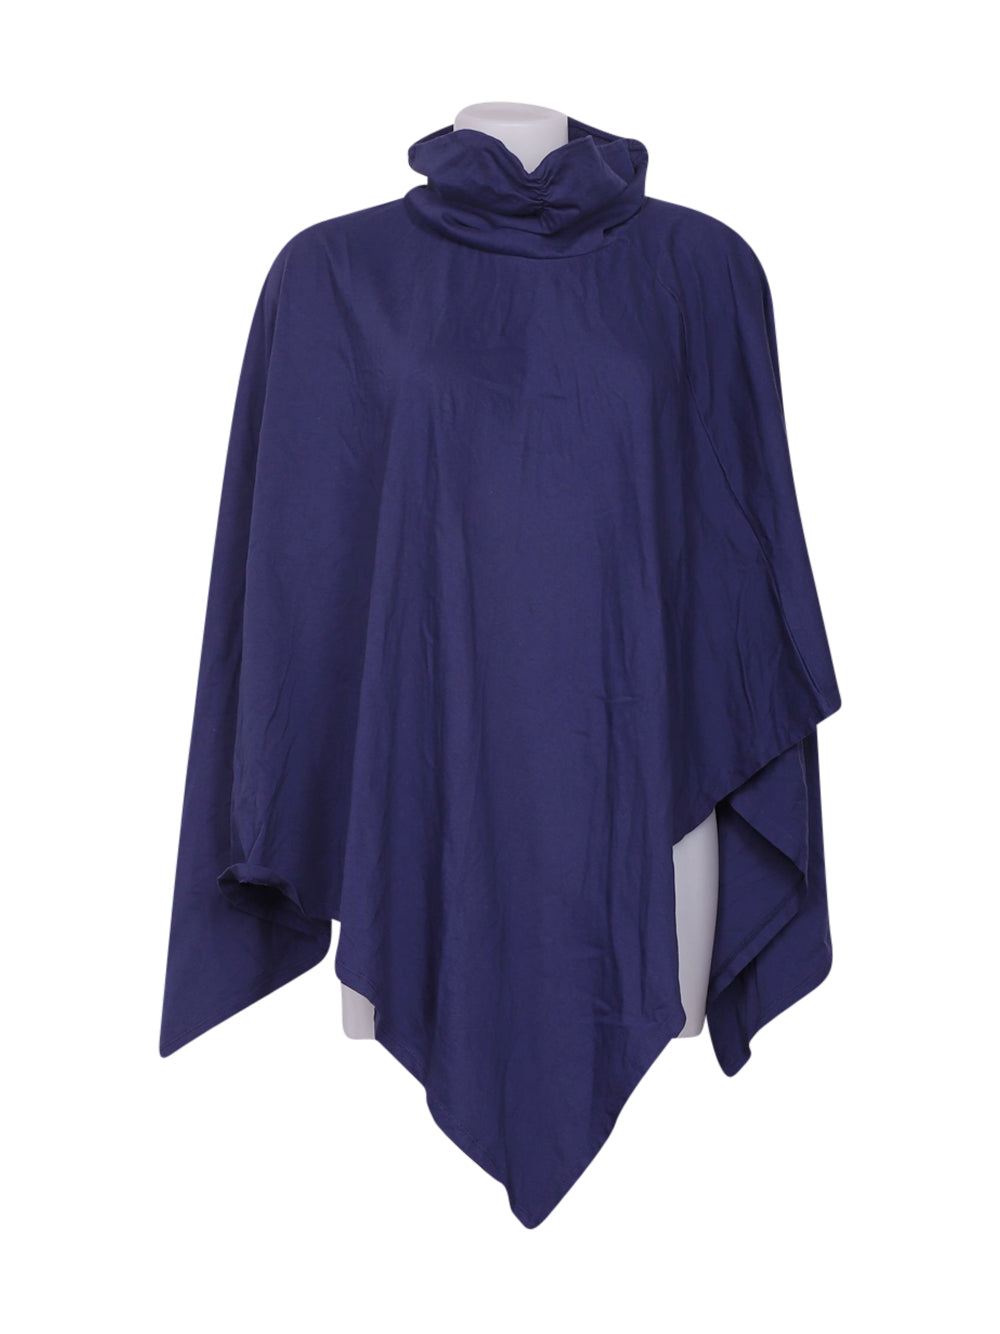 Front photo of Preloved Asos Violet Woman's poncho - size 4/XXS